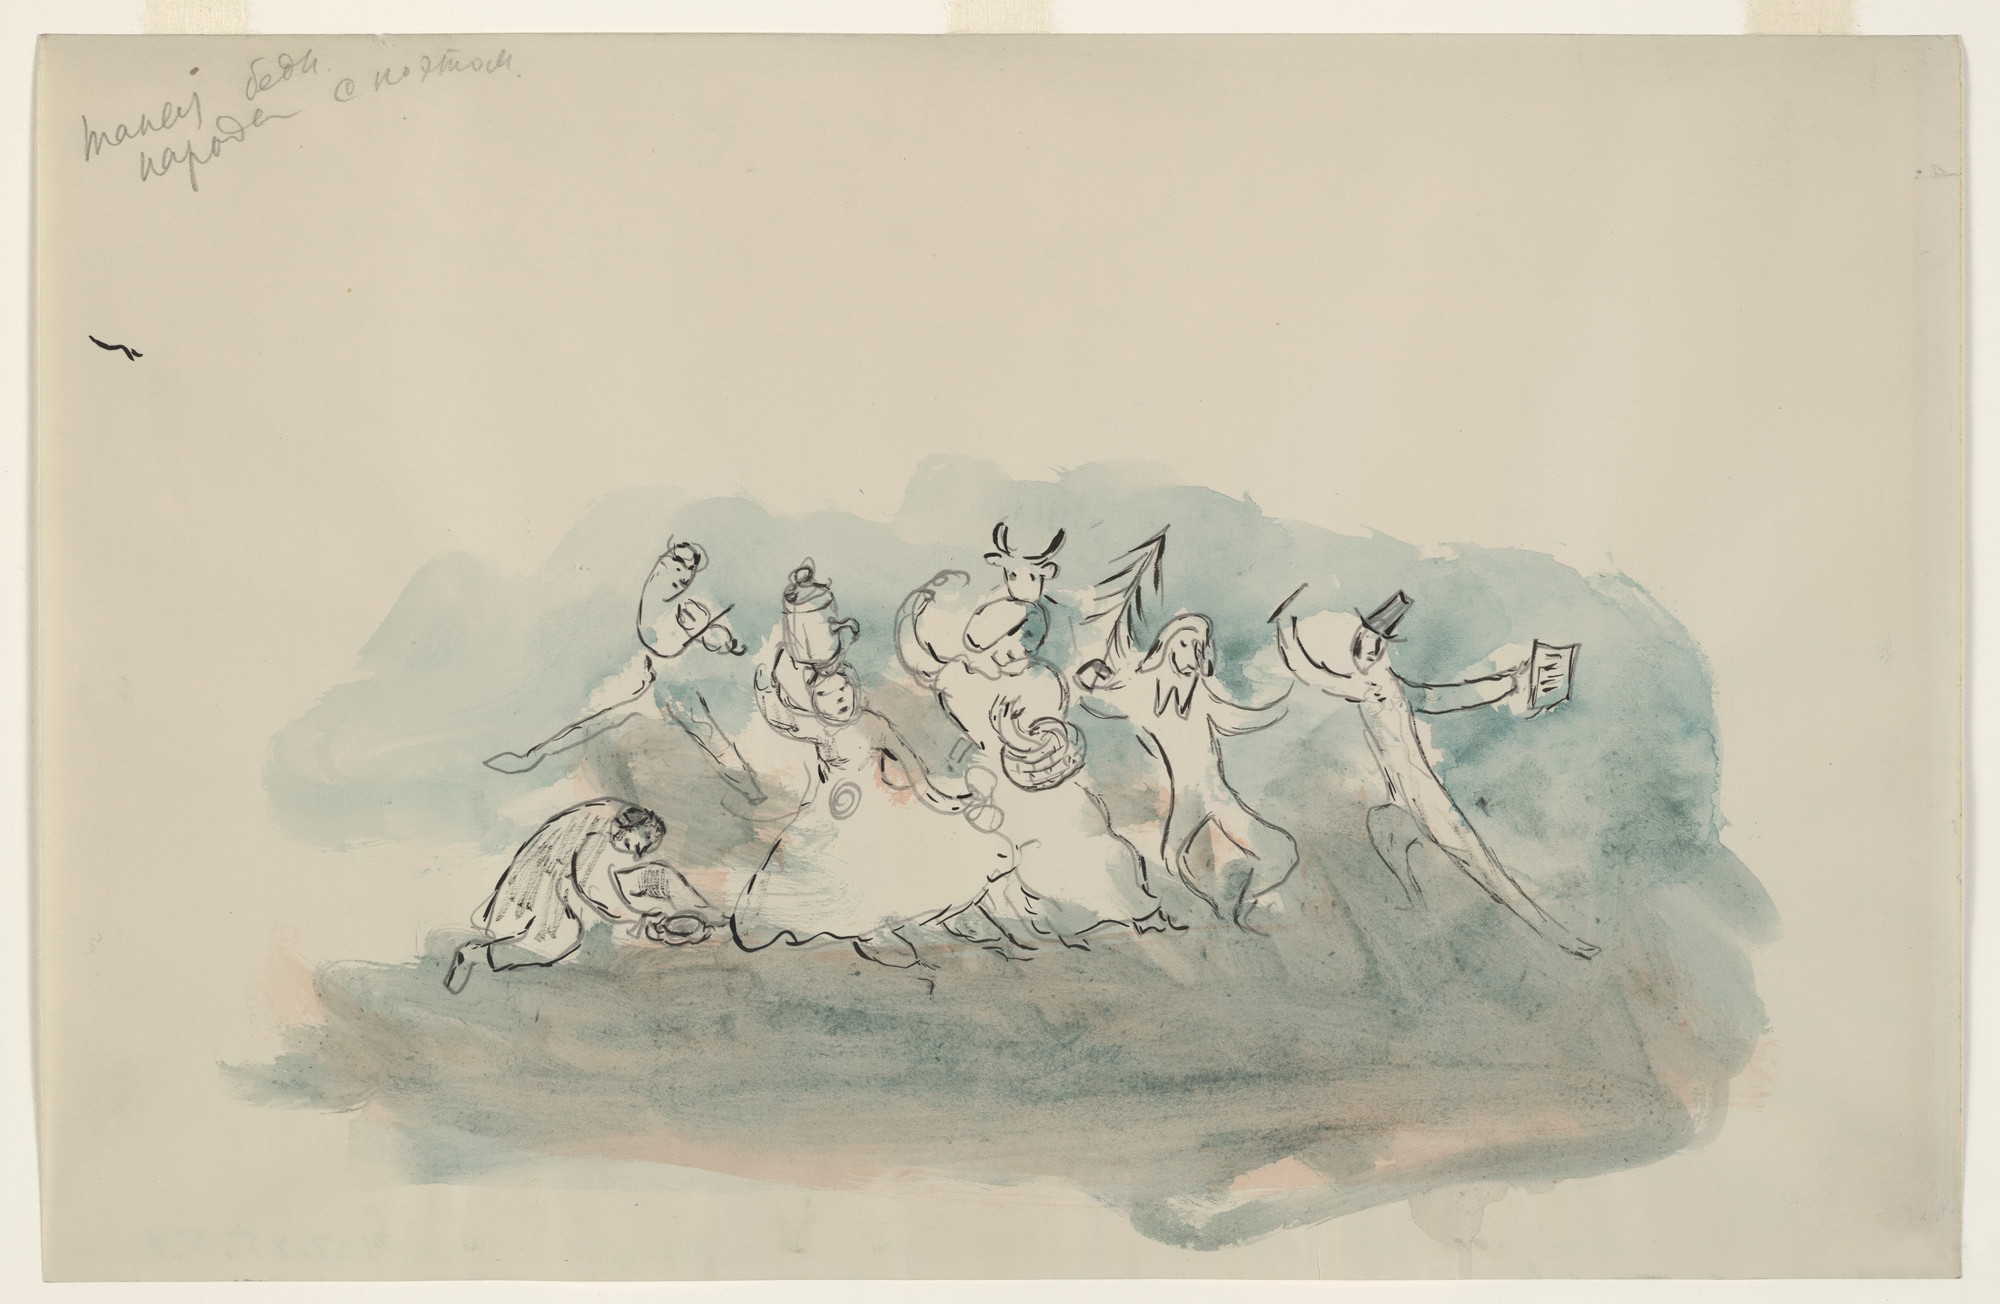 Marc Chagall. Dance of the Peasants. Sketch for the choreographer for Scene III of the ballet Aleko. 1942